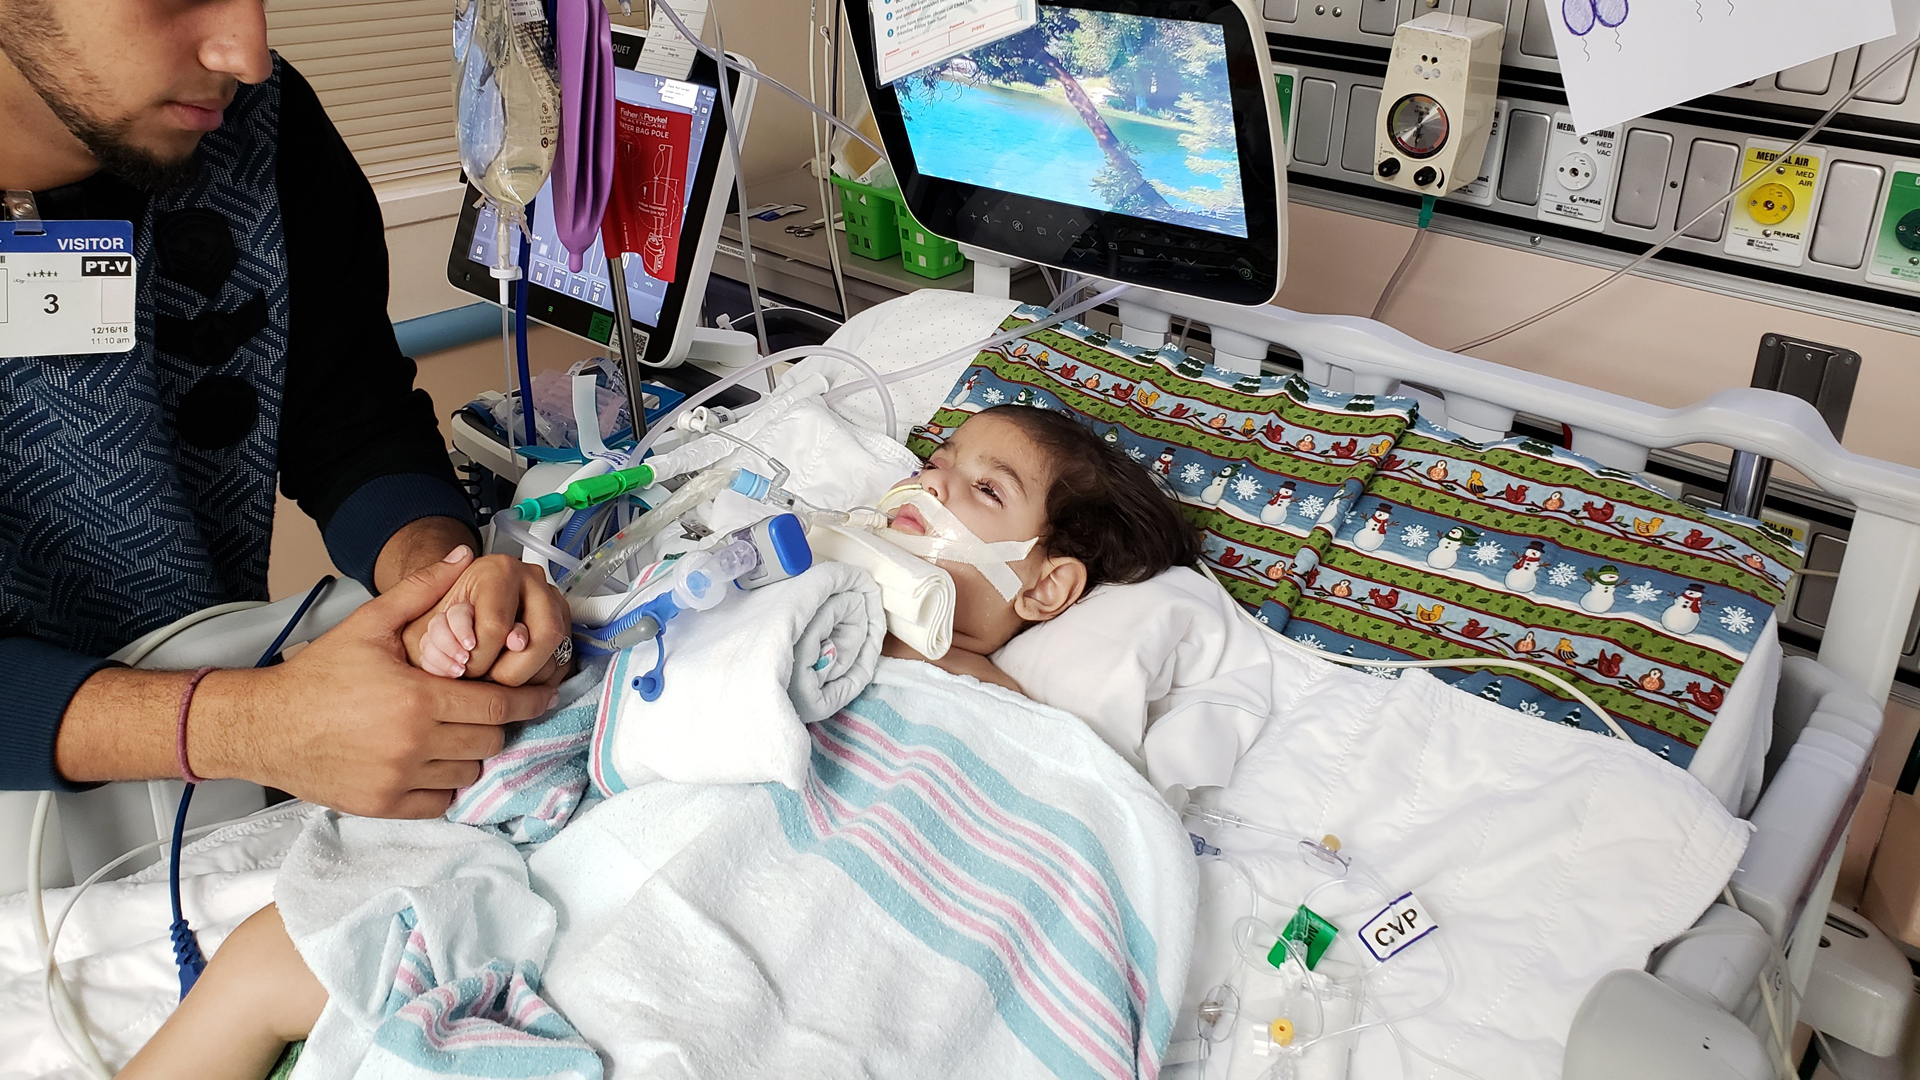 Abdullah Hassan, 2, is at UCSF Benioff Children's Hospital in Oakland due to a worsening genetic brain condition. (Credit: CAIR - Sacramento Valley)